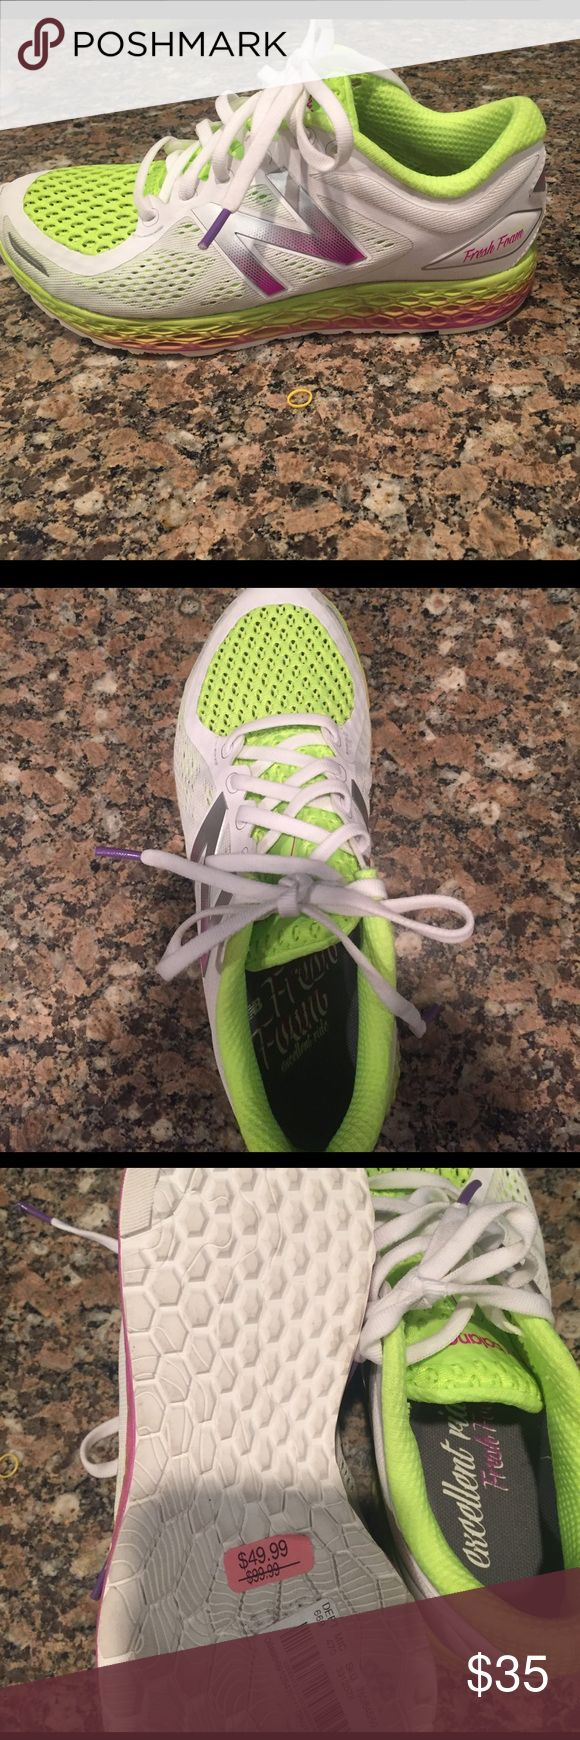 New Balance Excellent Ride White and lime green mesh running shoe. Never worn! Bought a 7 instead of an 8 by mistake trying to recoup some $! New Balance Shoes Athletic Shoes